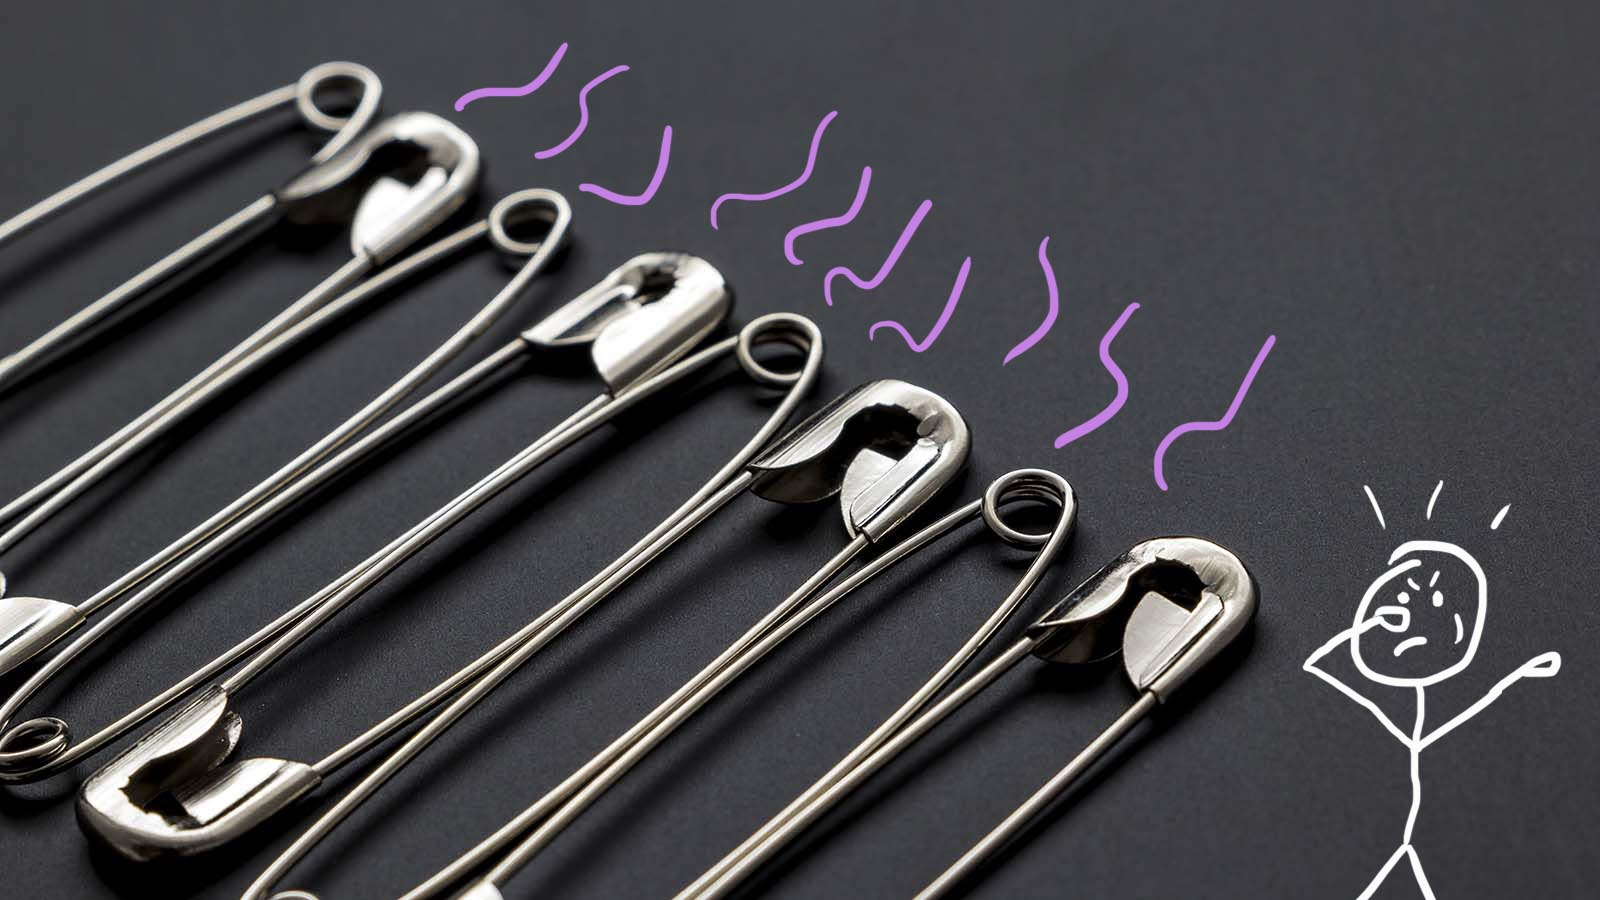 Silver safety pin sewing isolated black background